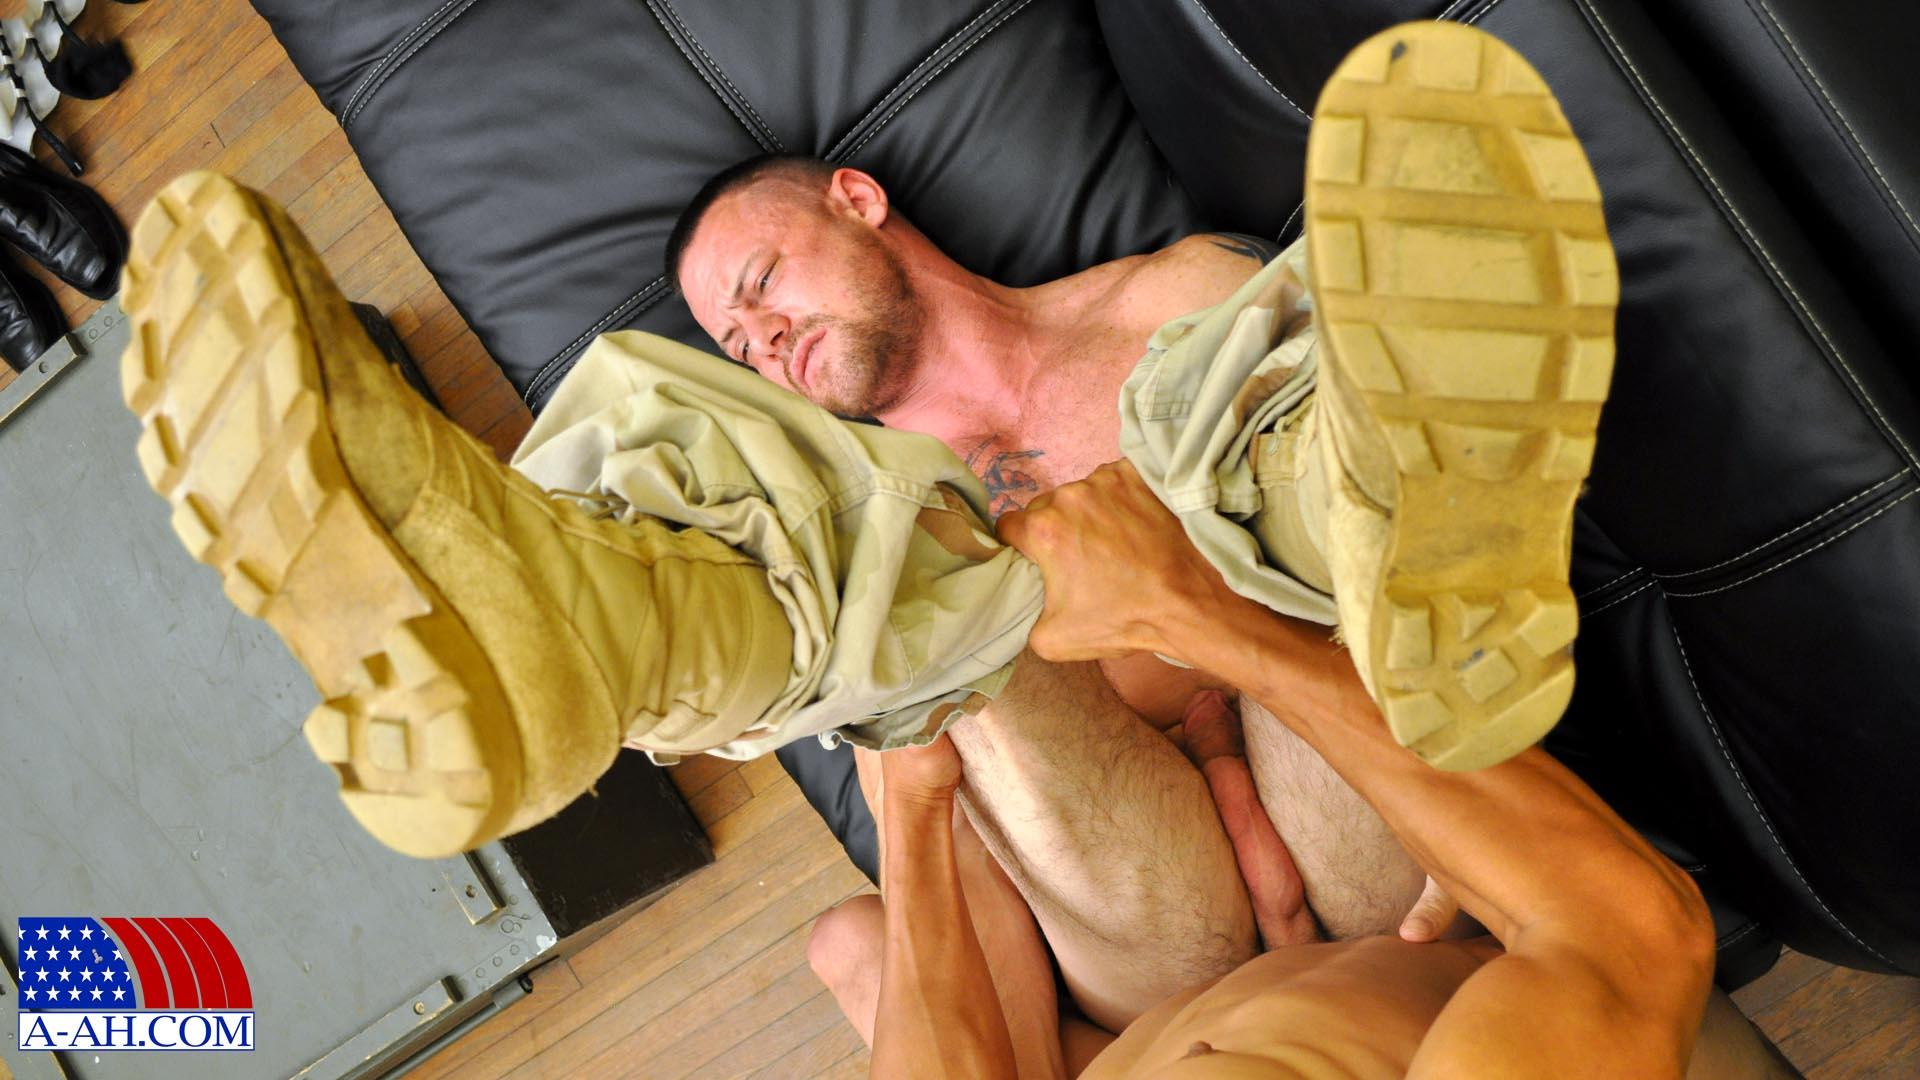 All American Heroes Navy Petty Officer Eddy fucking Army Sergeant Miles Big Uncut Cock Amateur Gay Porn 07